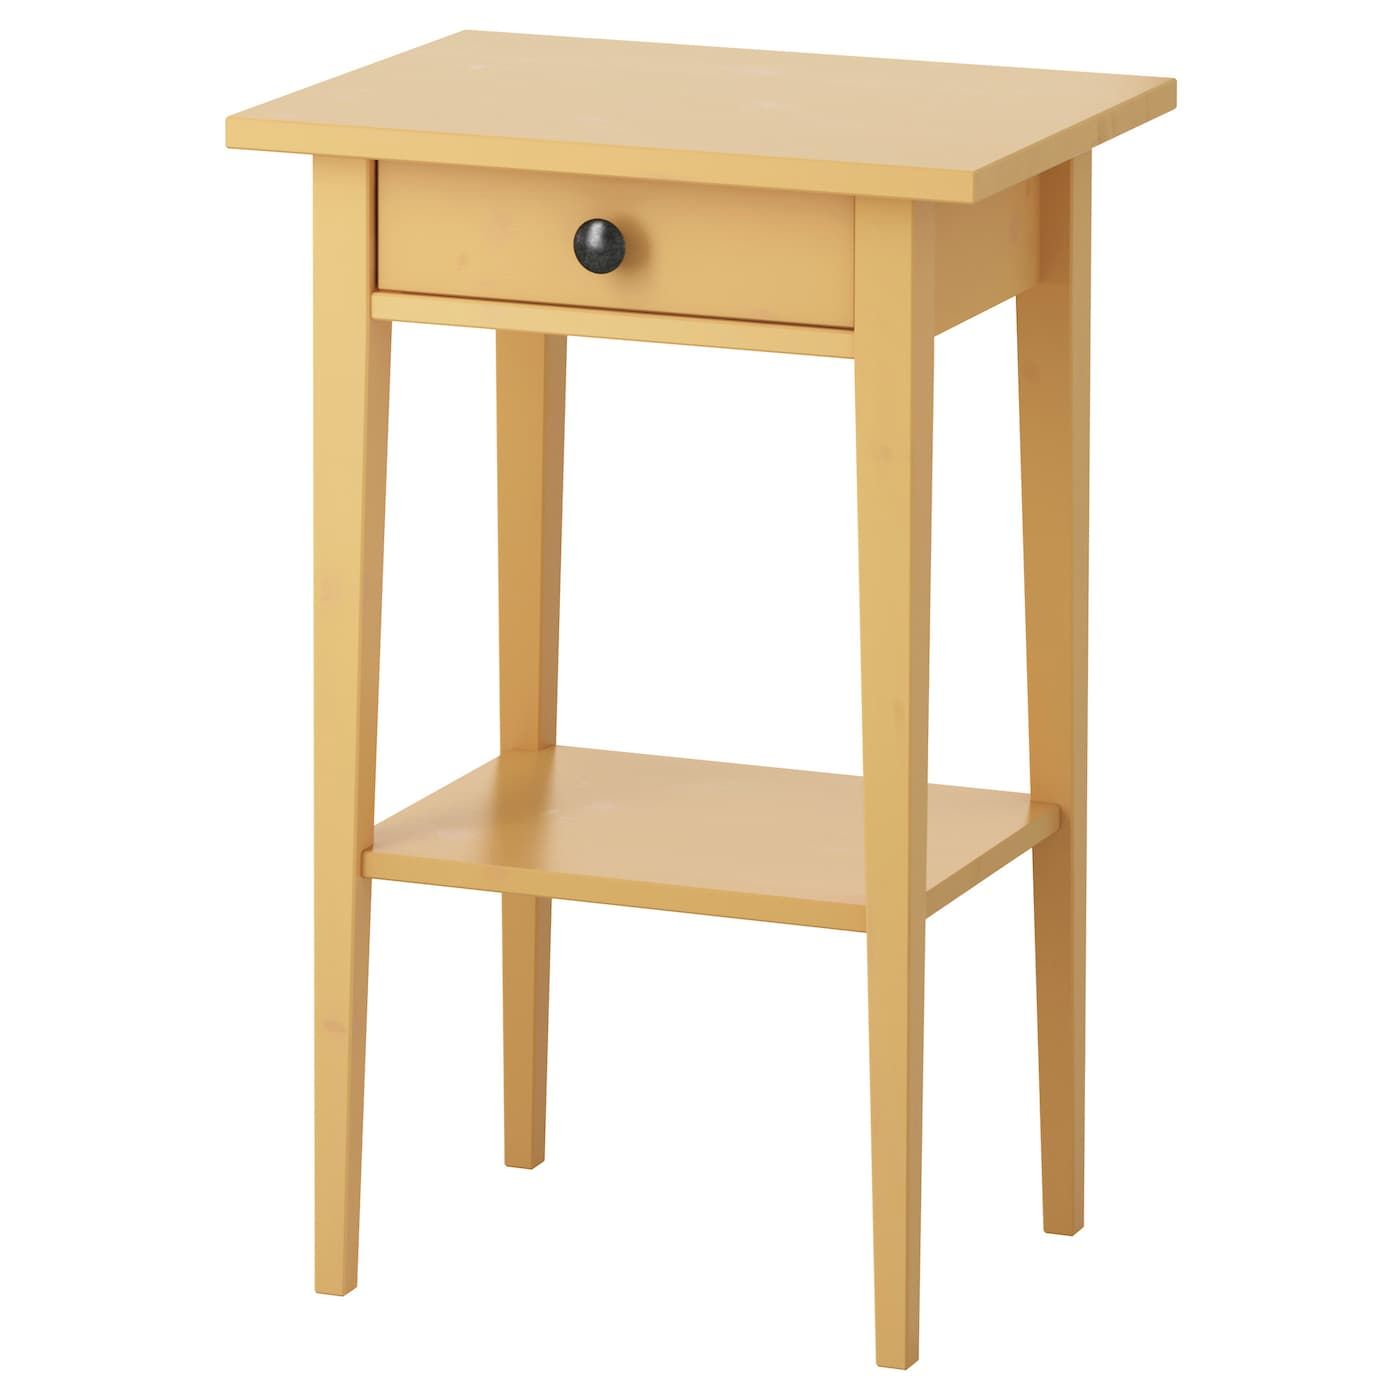 hemnes bedside table yellow 46x35 cm ikea. Black Bedroom Furniture Sets. Home Design Ideas